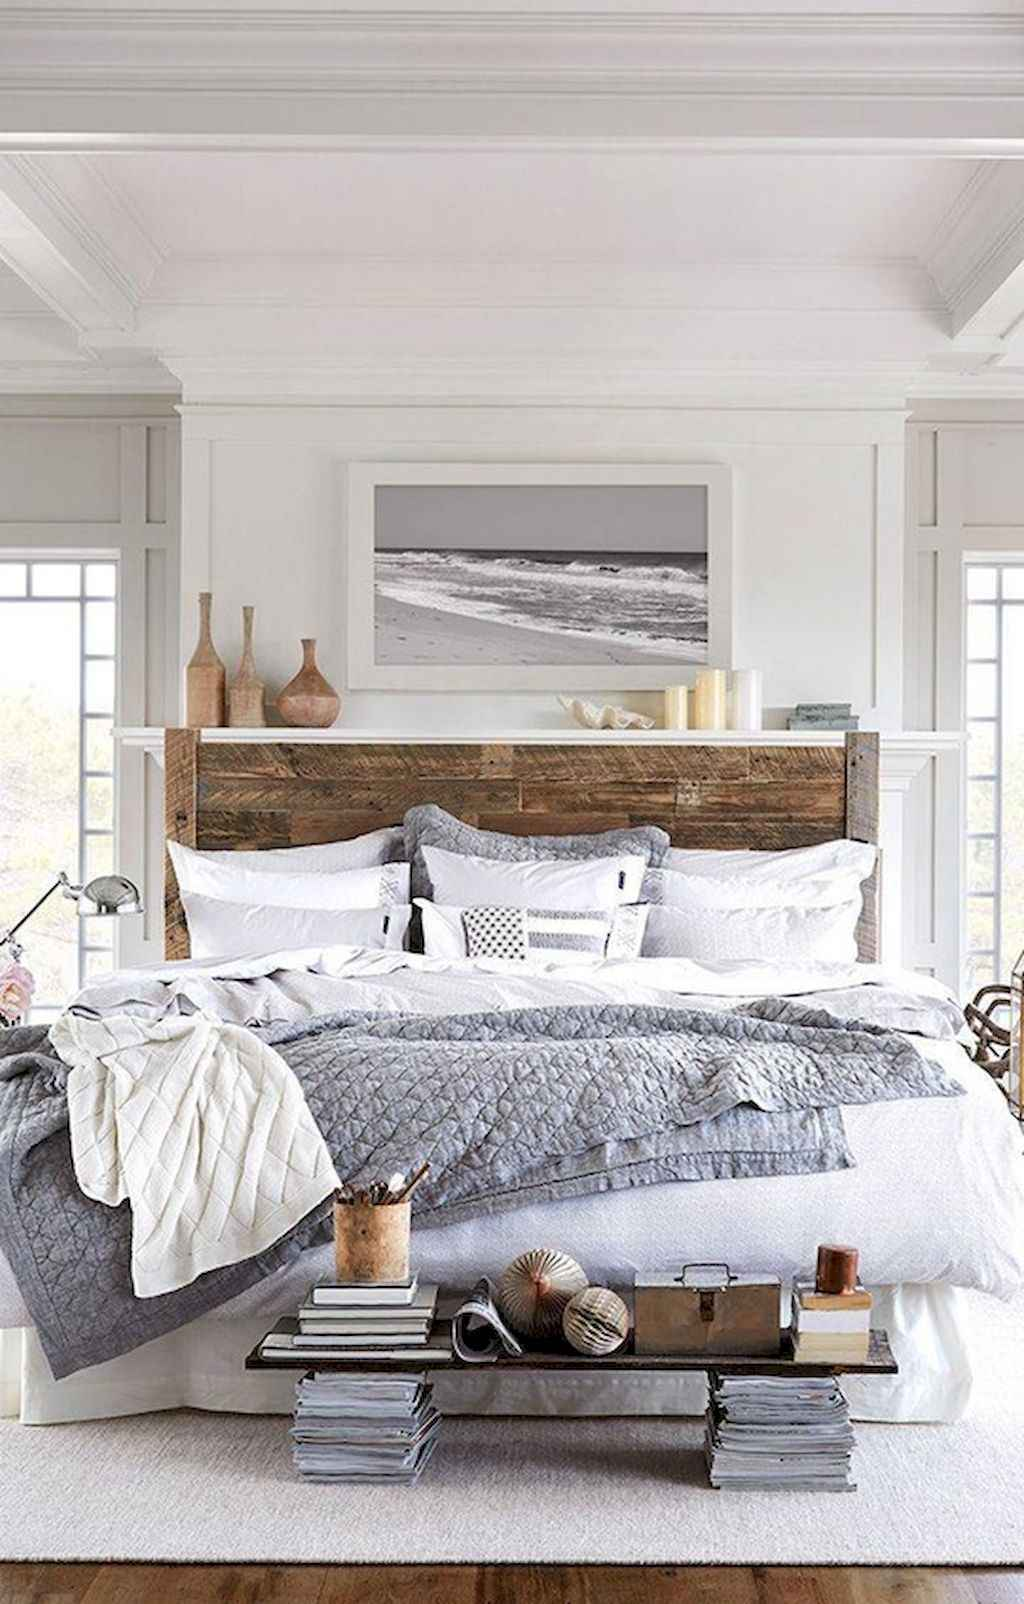 Couples first apartment decorating ideas (51)